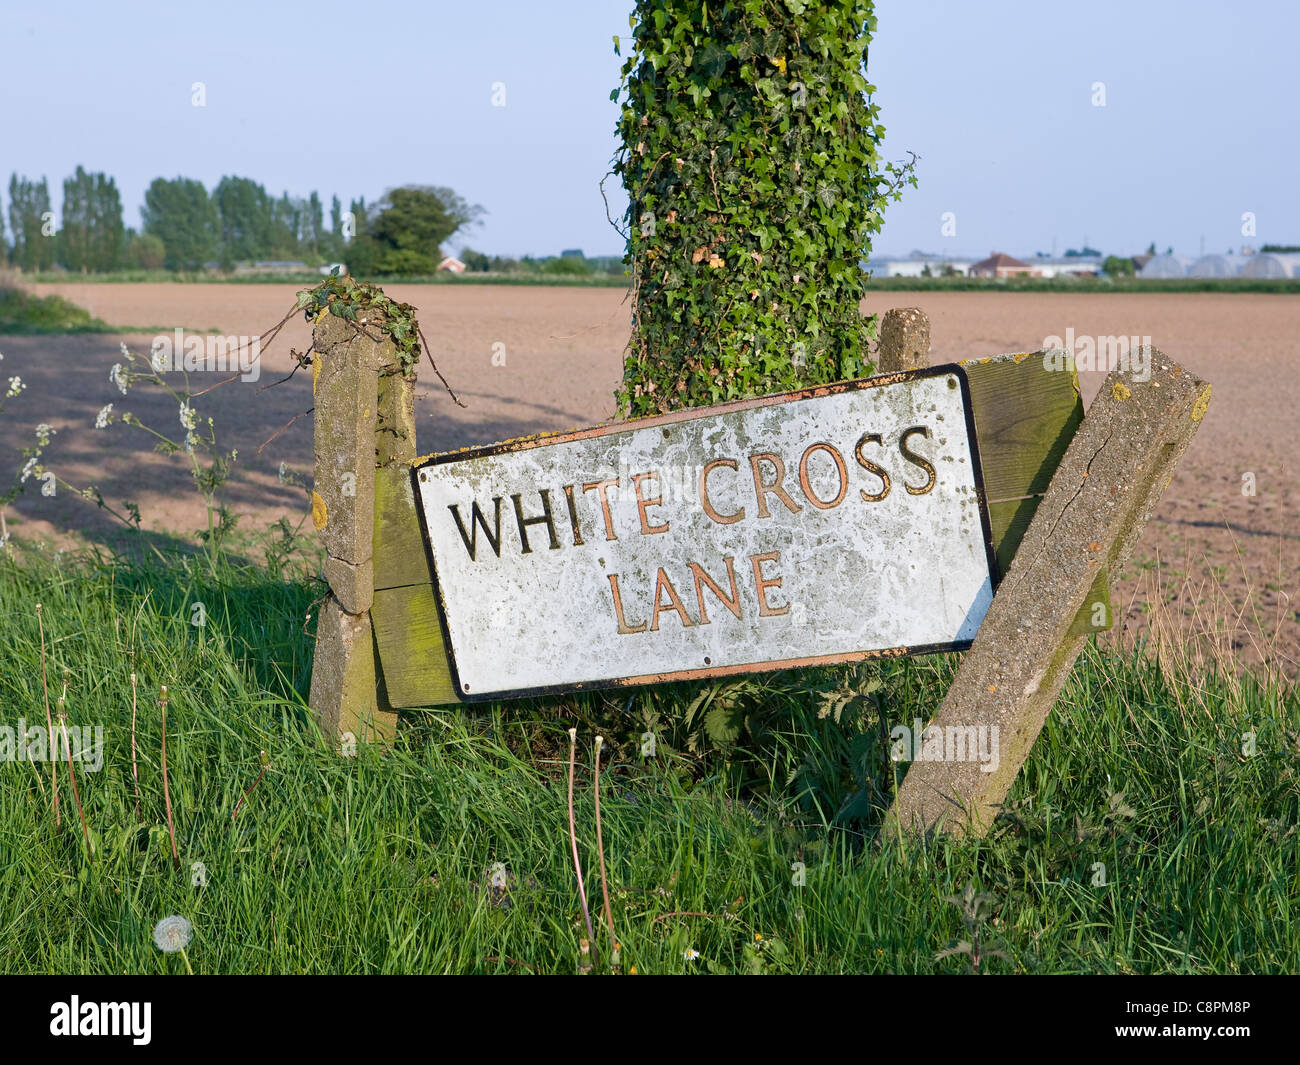 A neglected name board at beginning of a country lane. - Stock Image